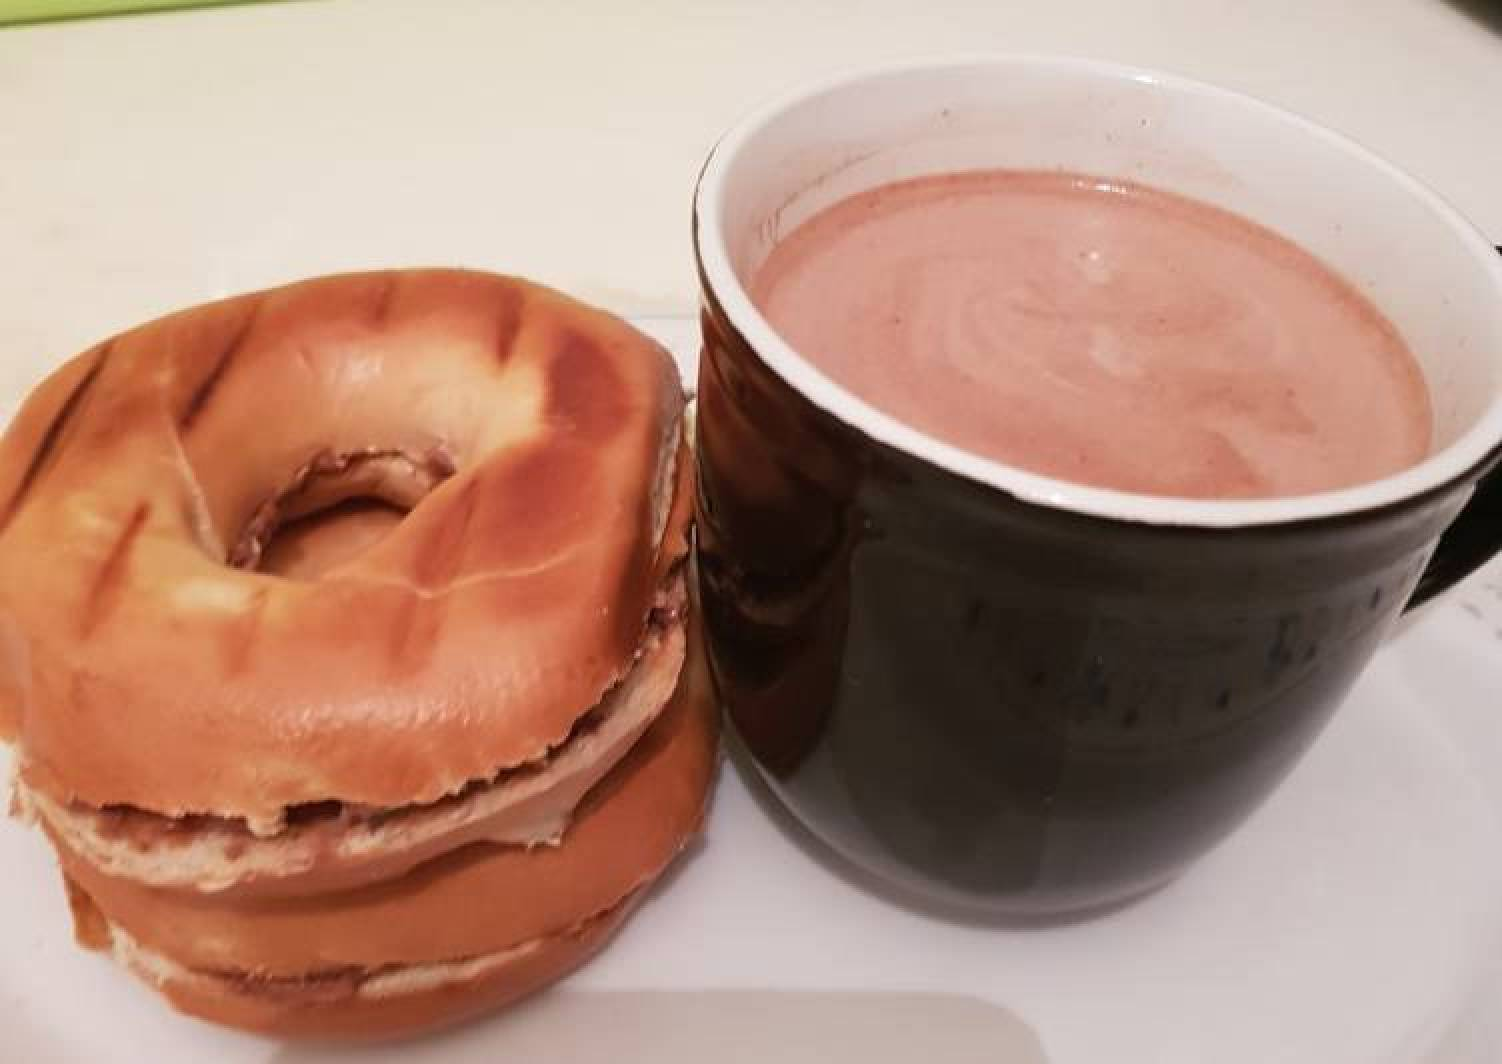 Bagels bread and Hot chocolate drinks